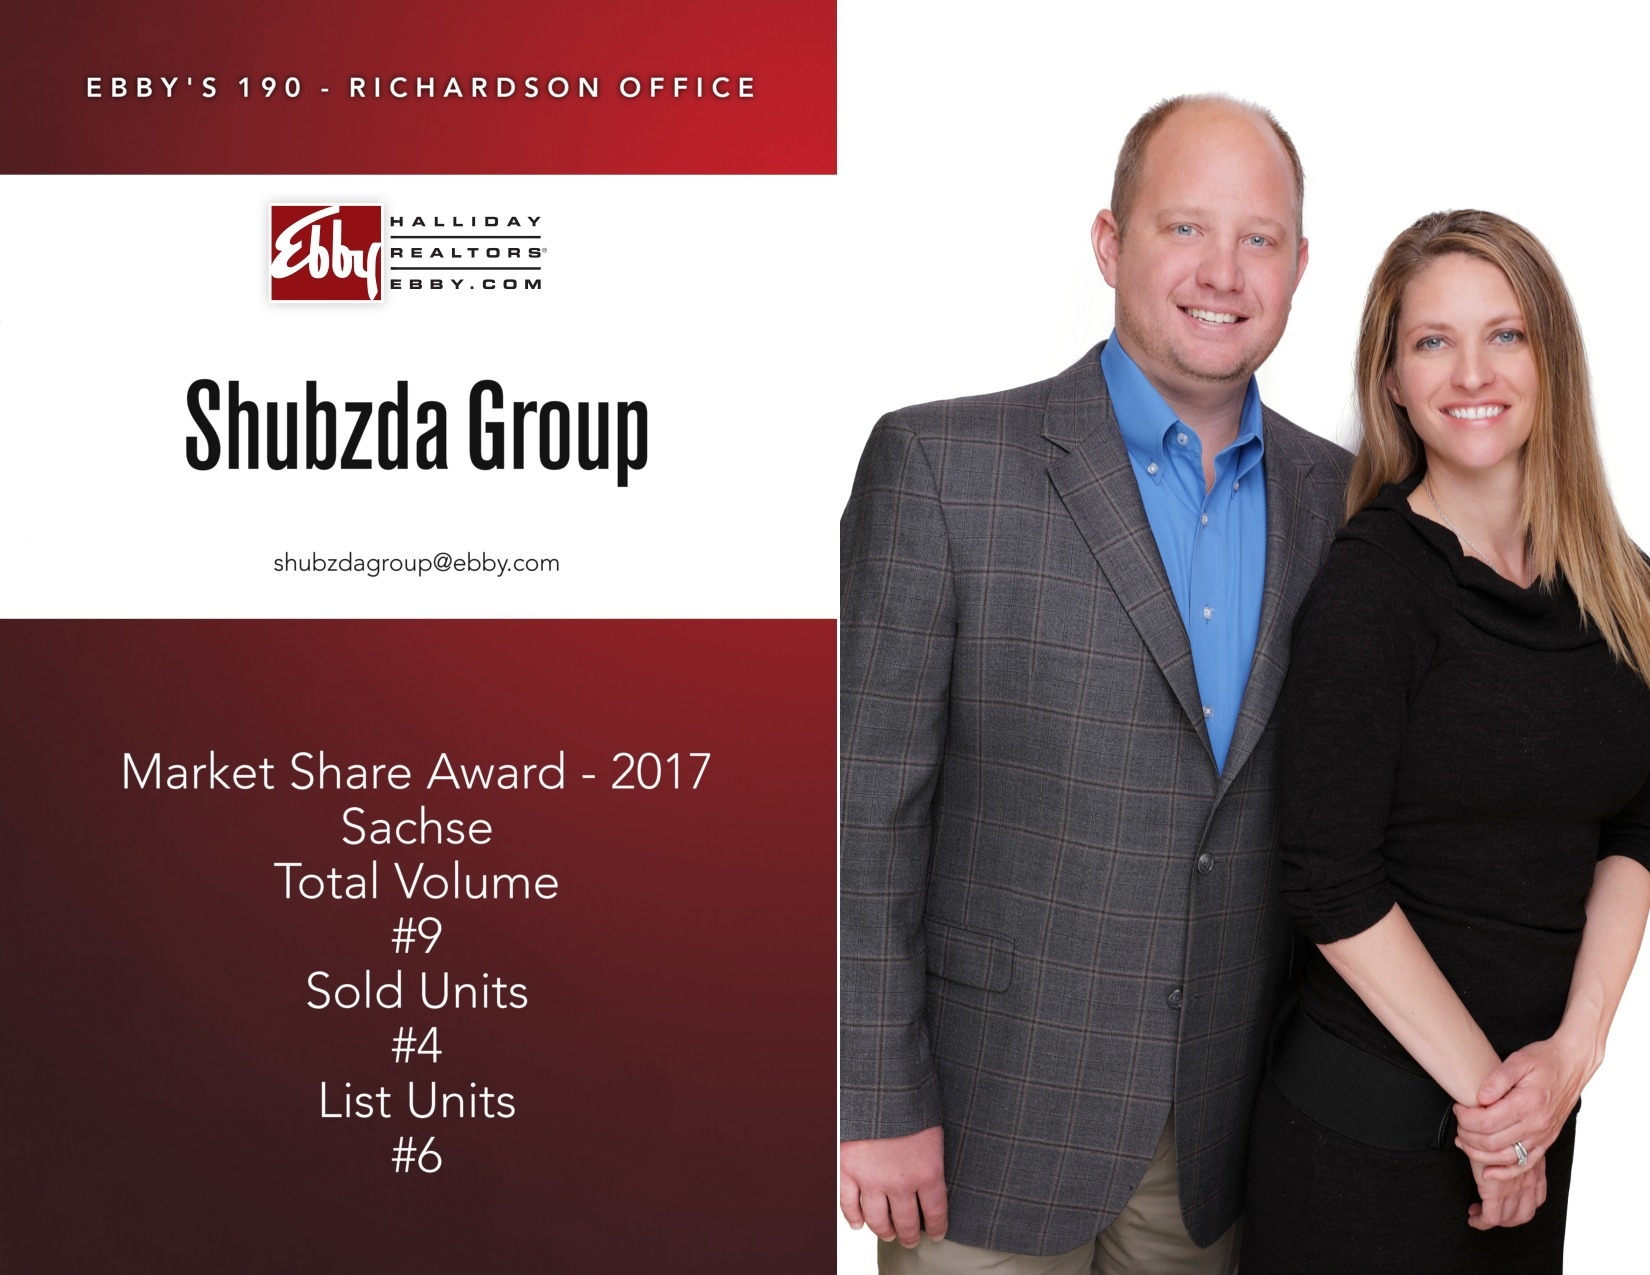 MPA - Sachse - Shubzda Group